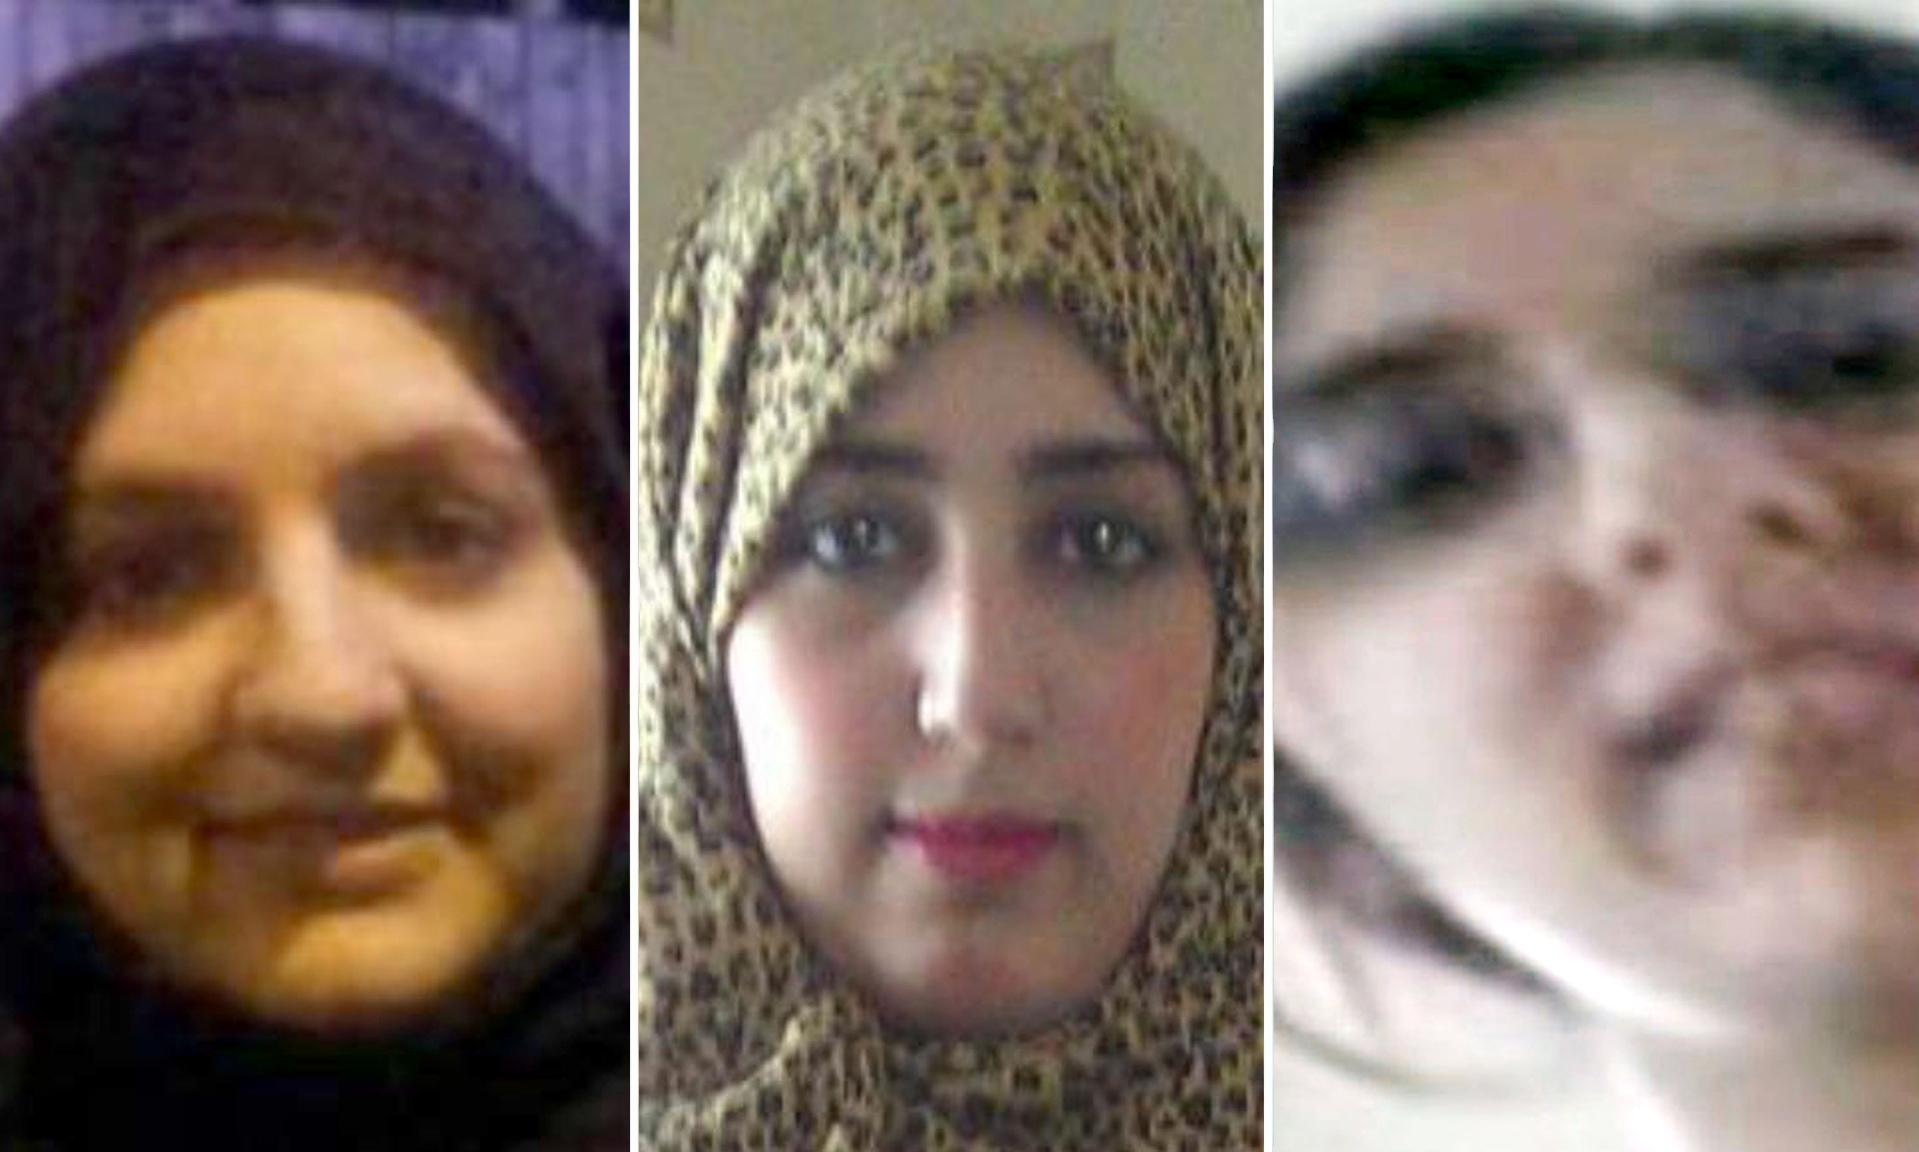 Parents of women thought to be in Syria speak of family's 'great distress'